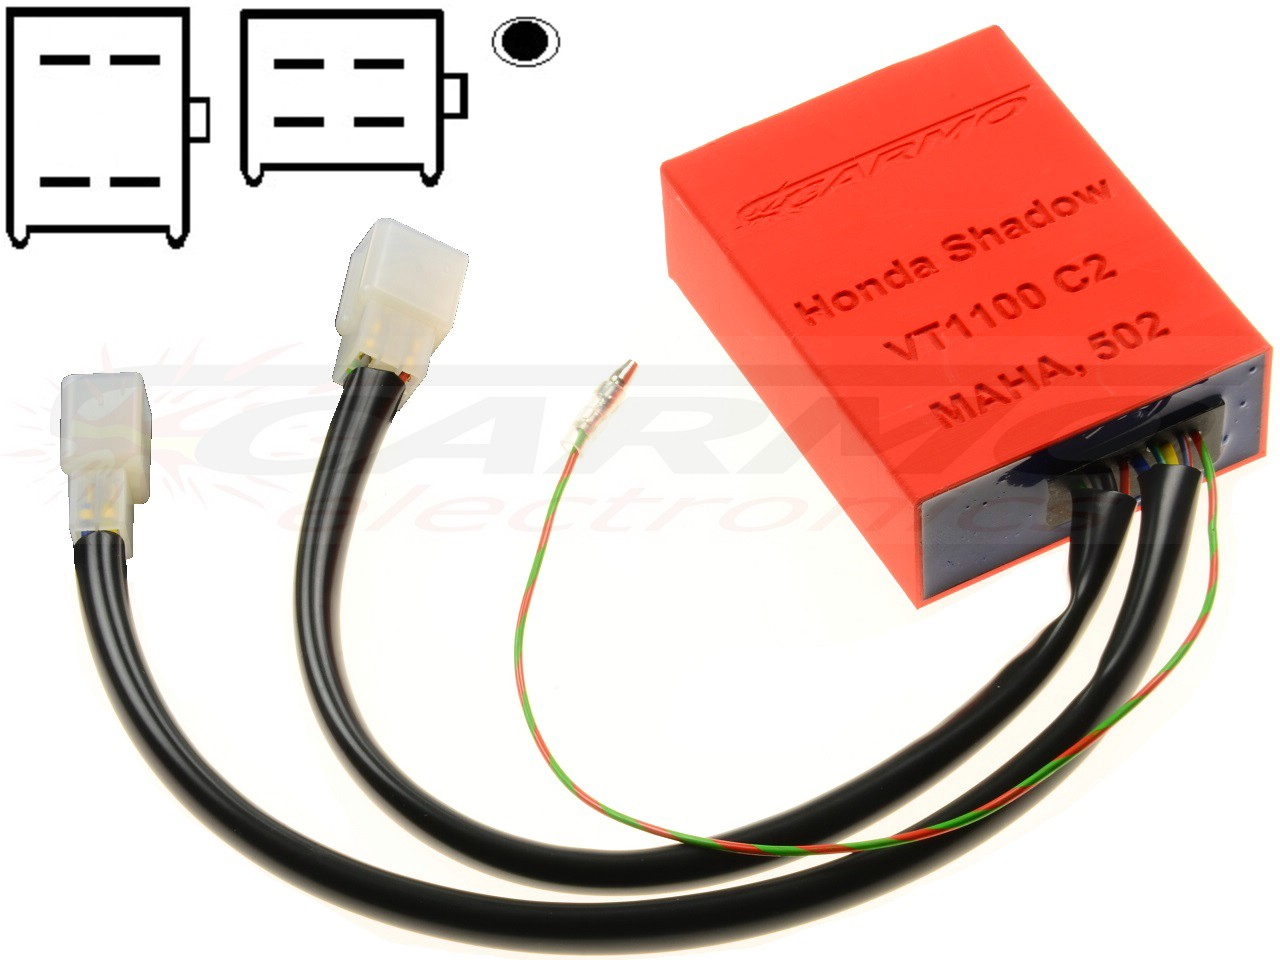 Honda VT1100 C2 Shadow CDI igniter ignition box (MAHA) larger image